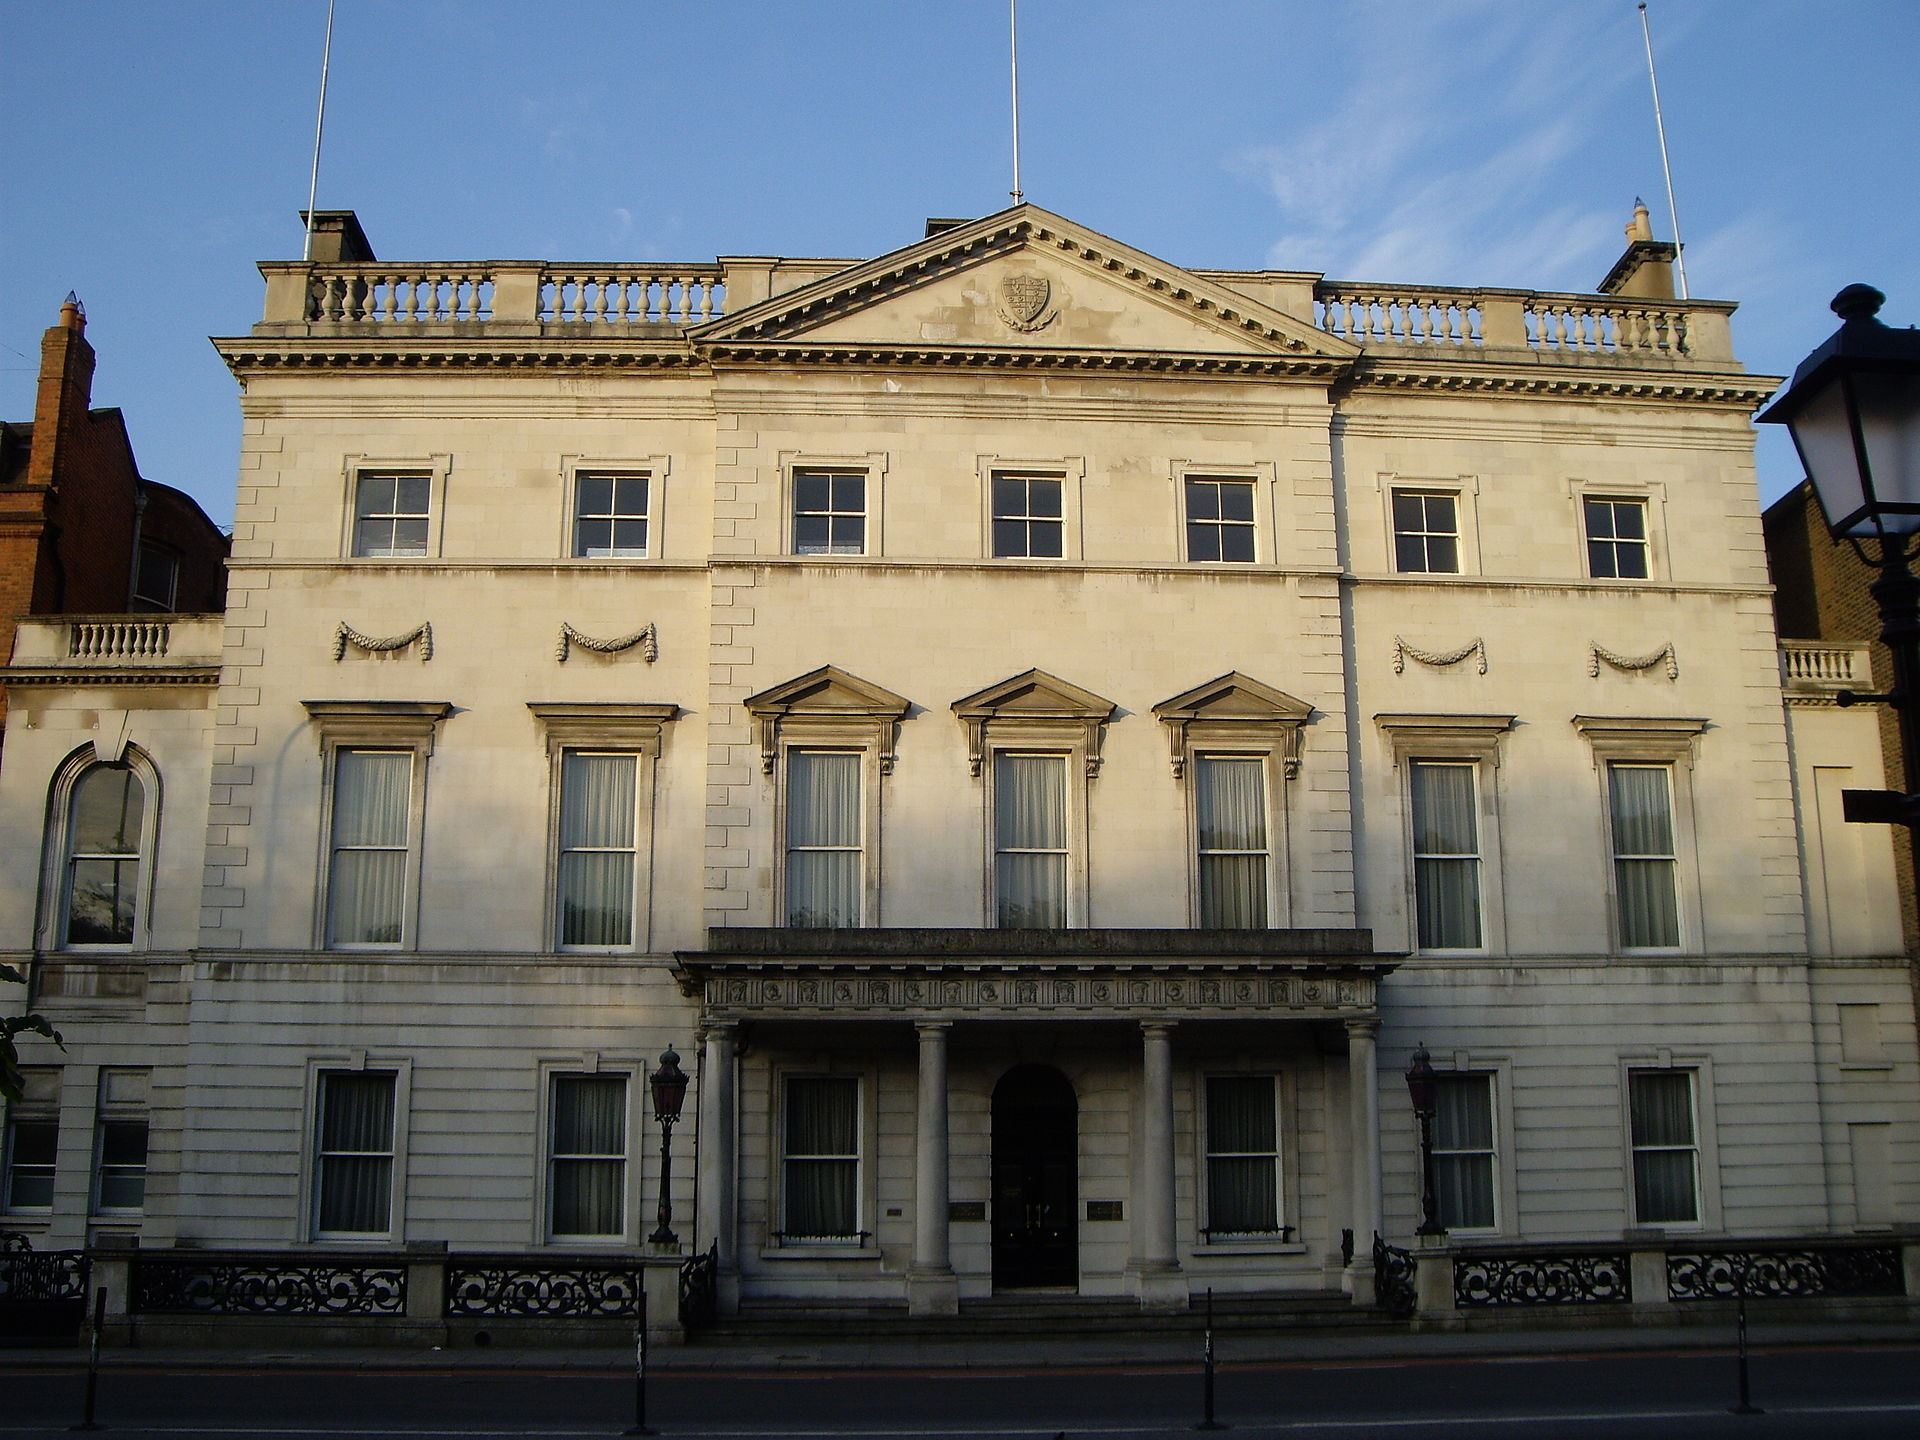 Department of foreign affairs and trade ireland wikipedia - Department of foreign affairs offices ...